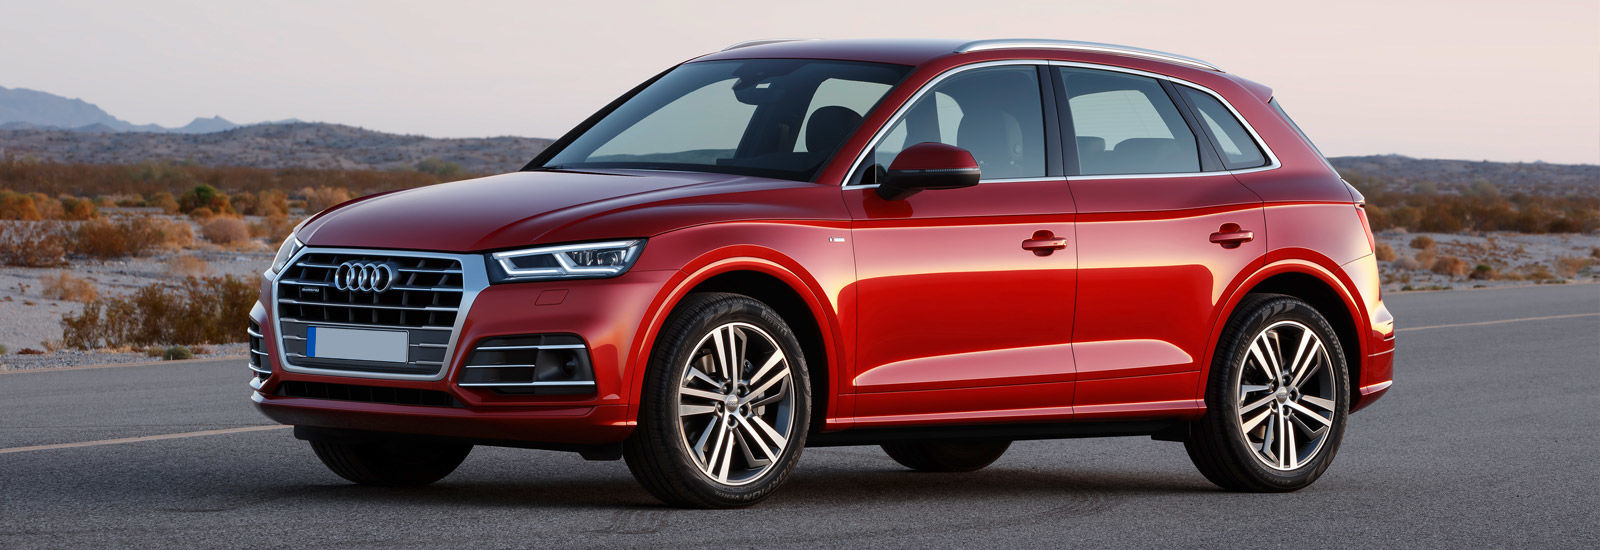 audi q5 2017 price specs and release date carwow. Black Bedroom Furniture Sets. Home Design Ideas